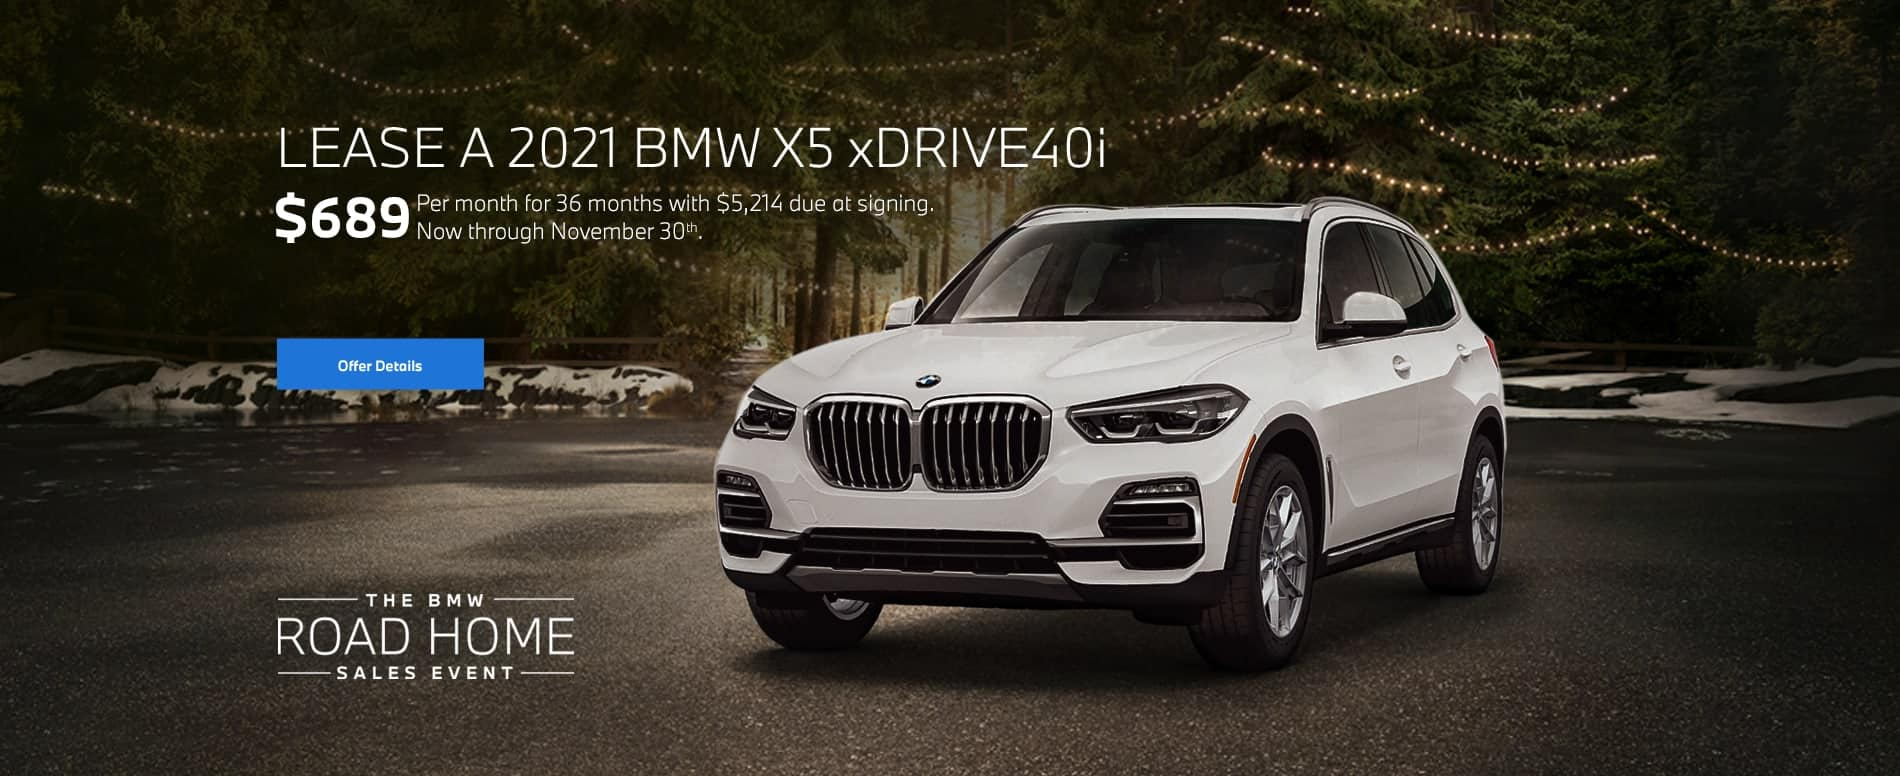 2021 BMW X5 sDrive40i Lease for $689/mo